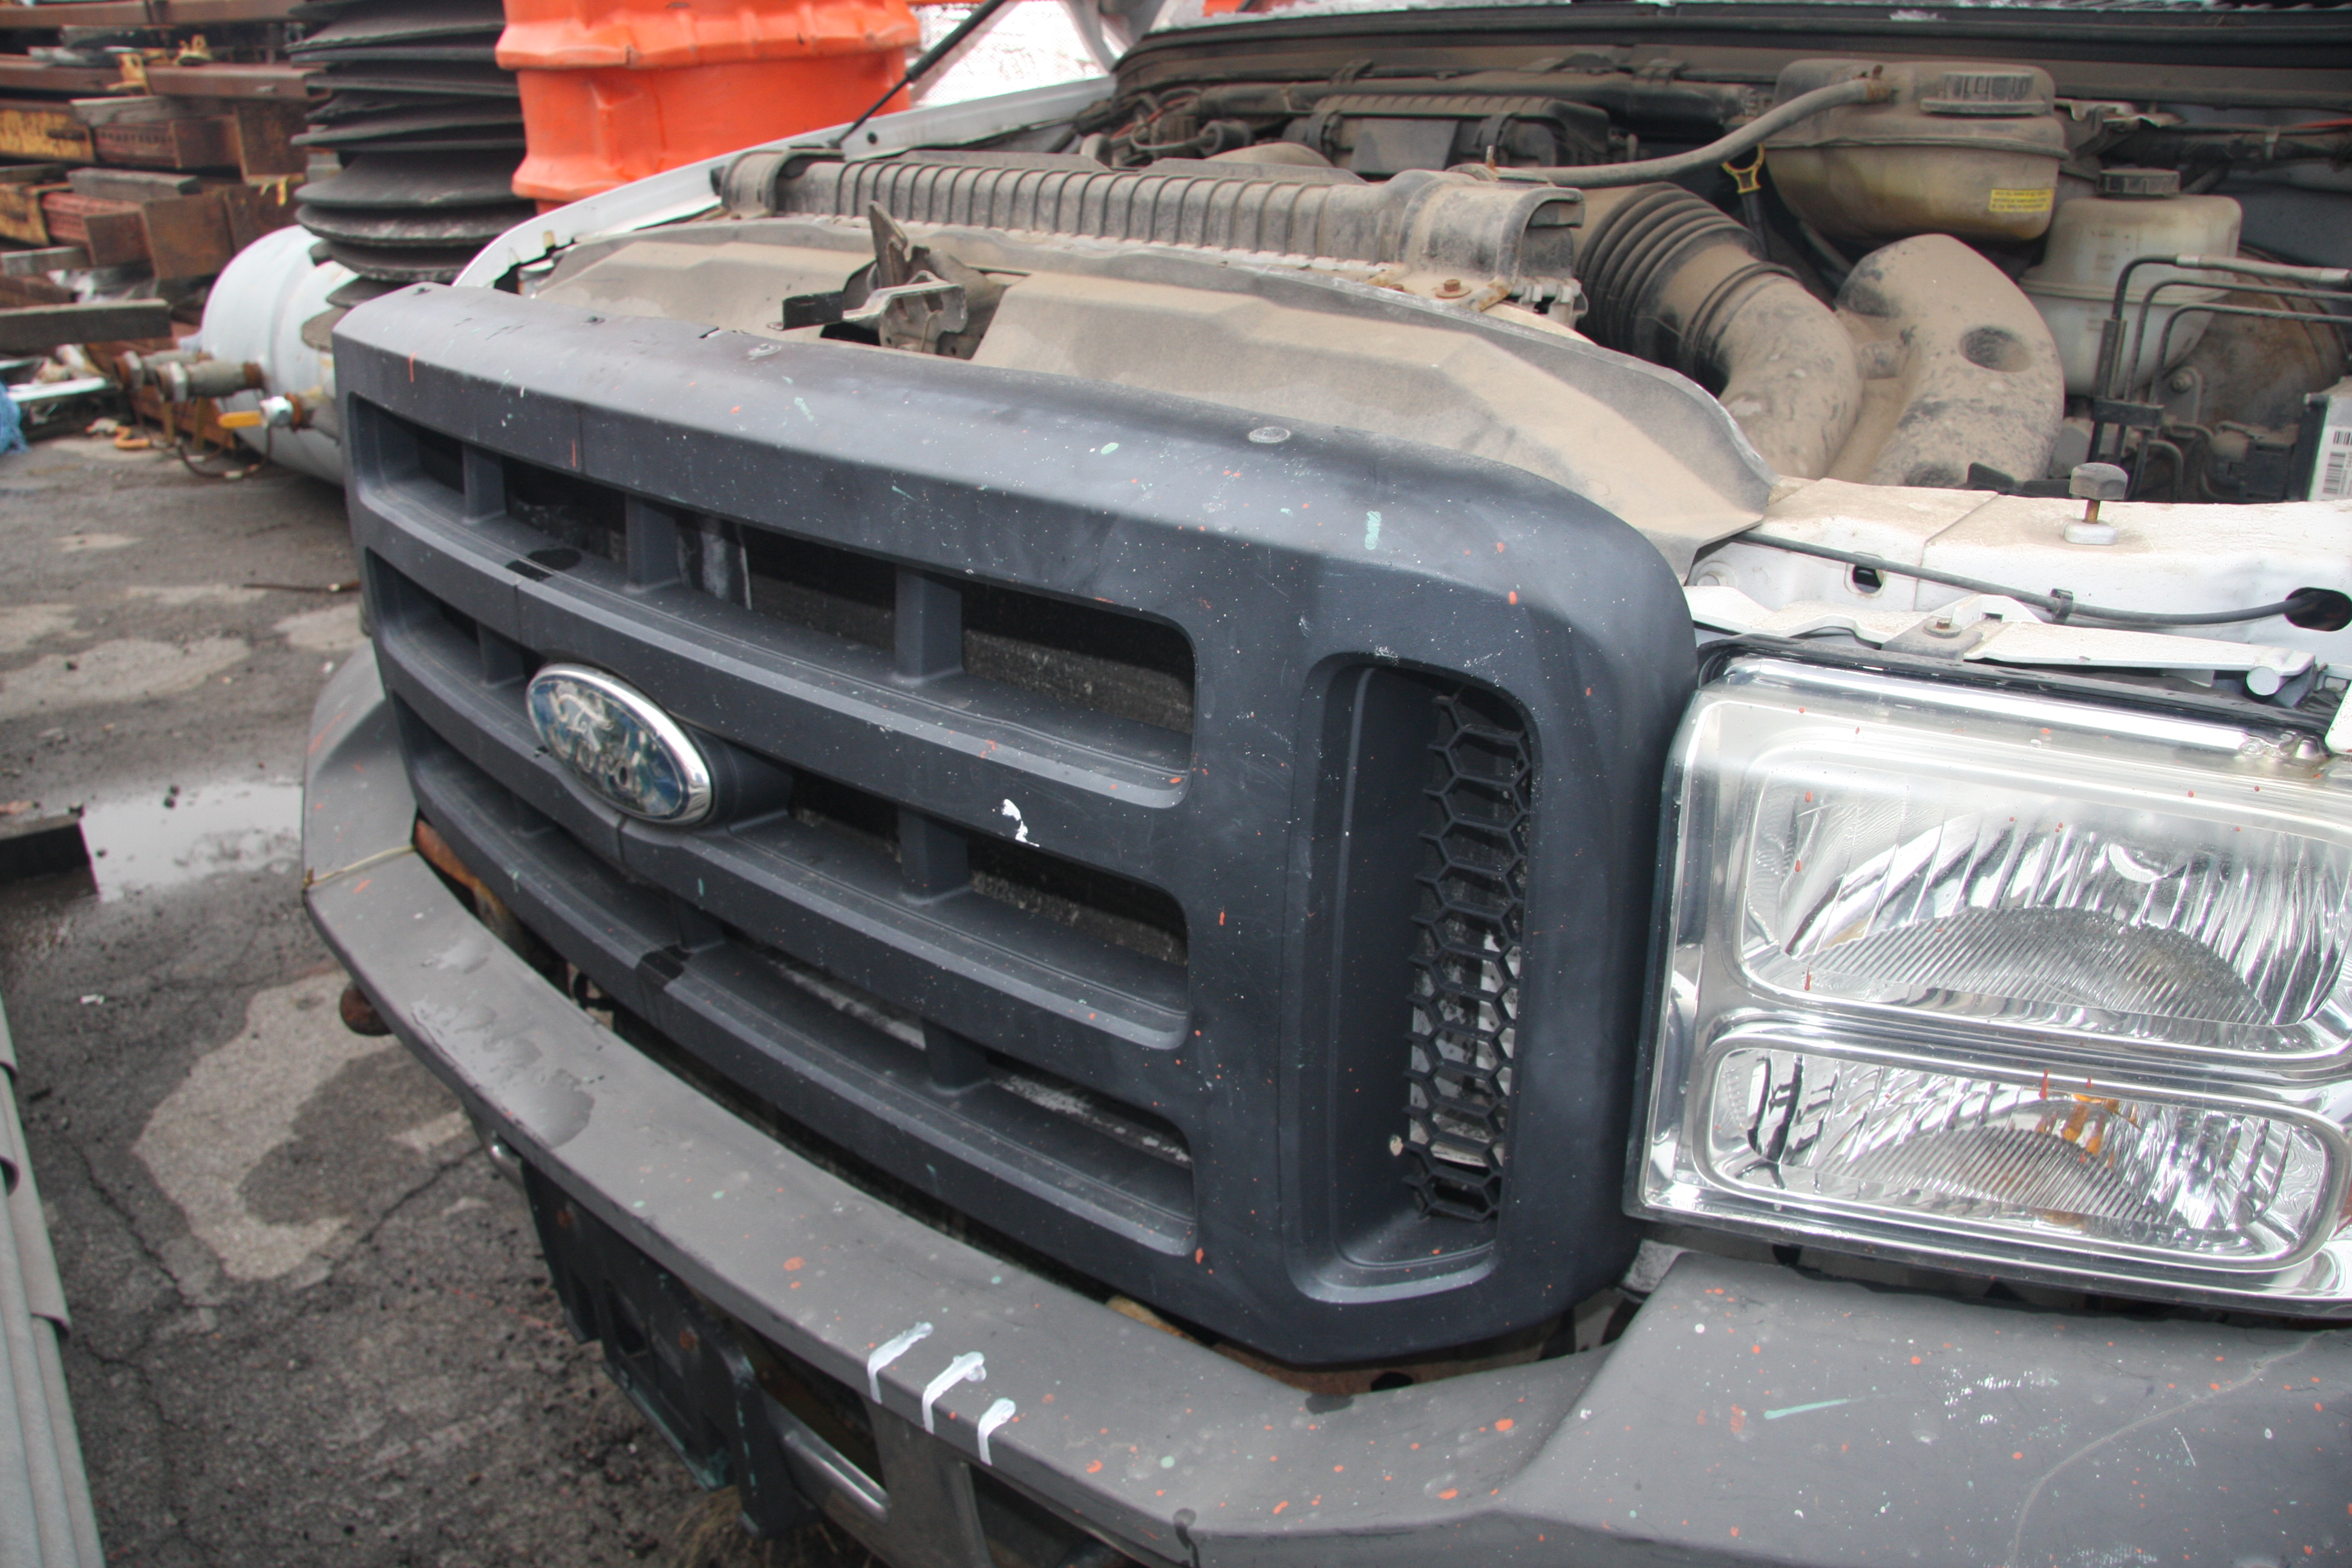 Lot 3 - 2006 FORD F-250 XL SUPER DUTY PICKUP TRUCK, 4-WHEEL DRIVE, AUTOMATIC, APPROXIMATELY 95,601 MILES,